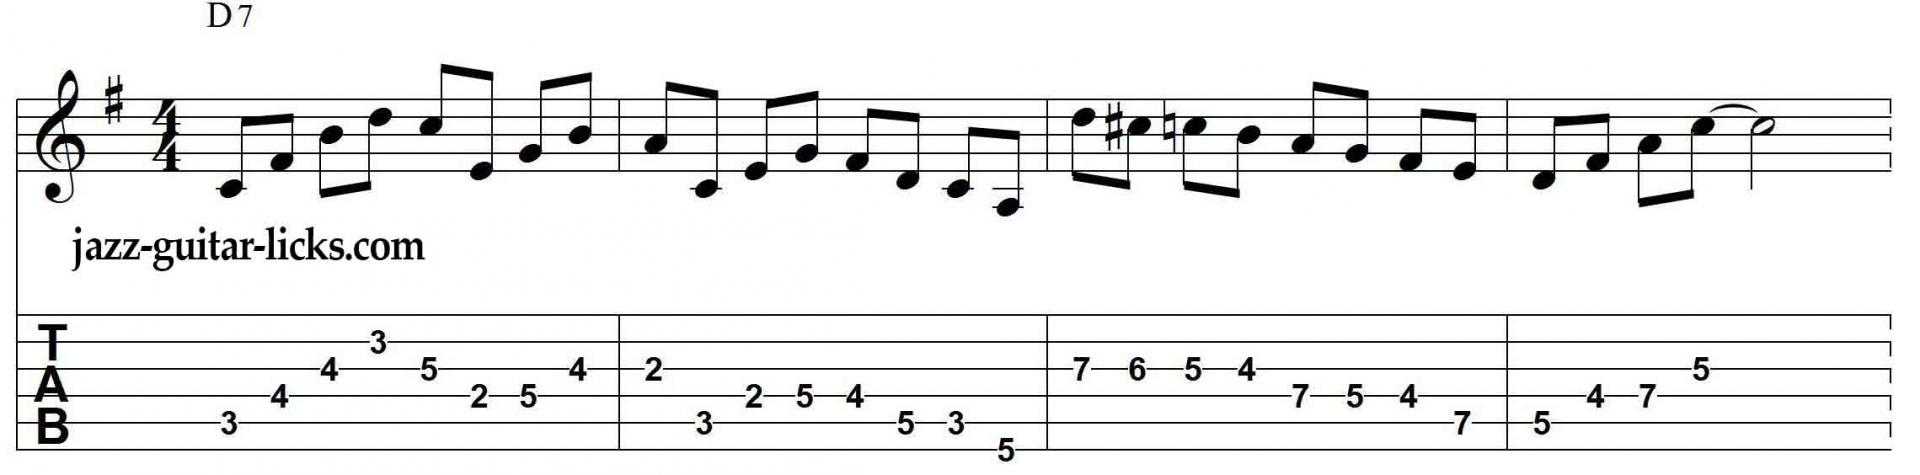 D7 bebop dominant jazz guitar lick